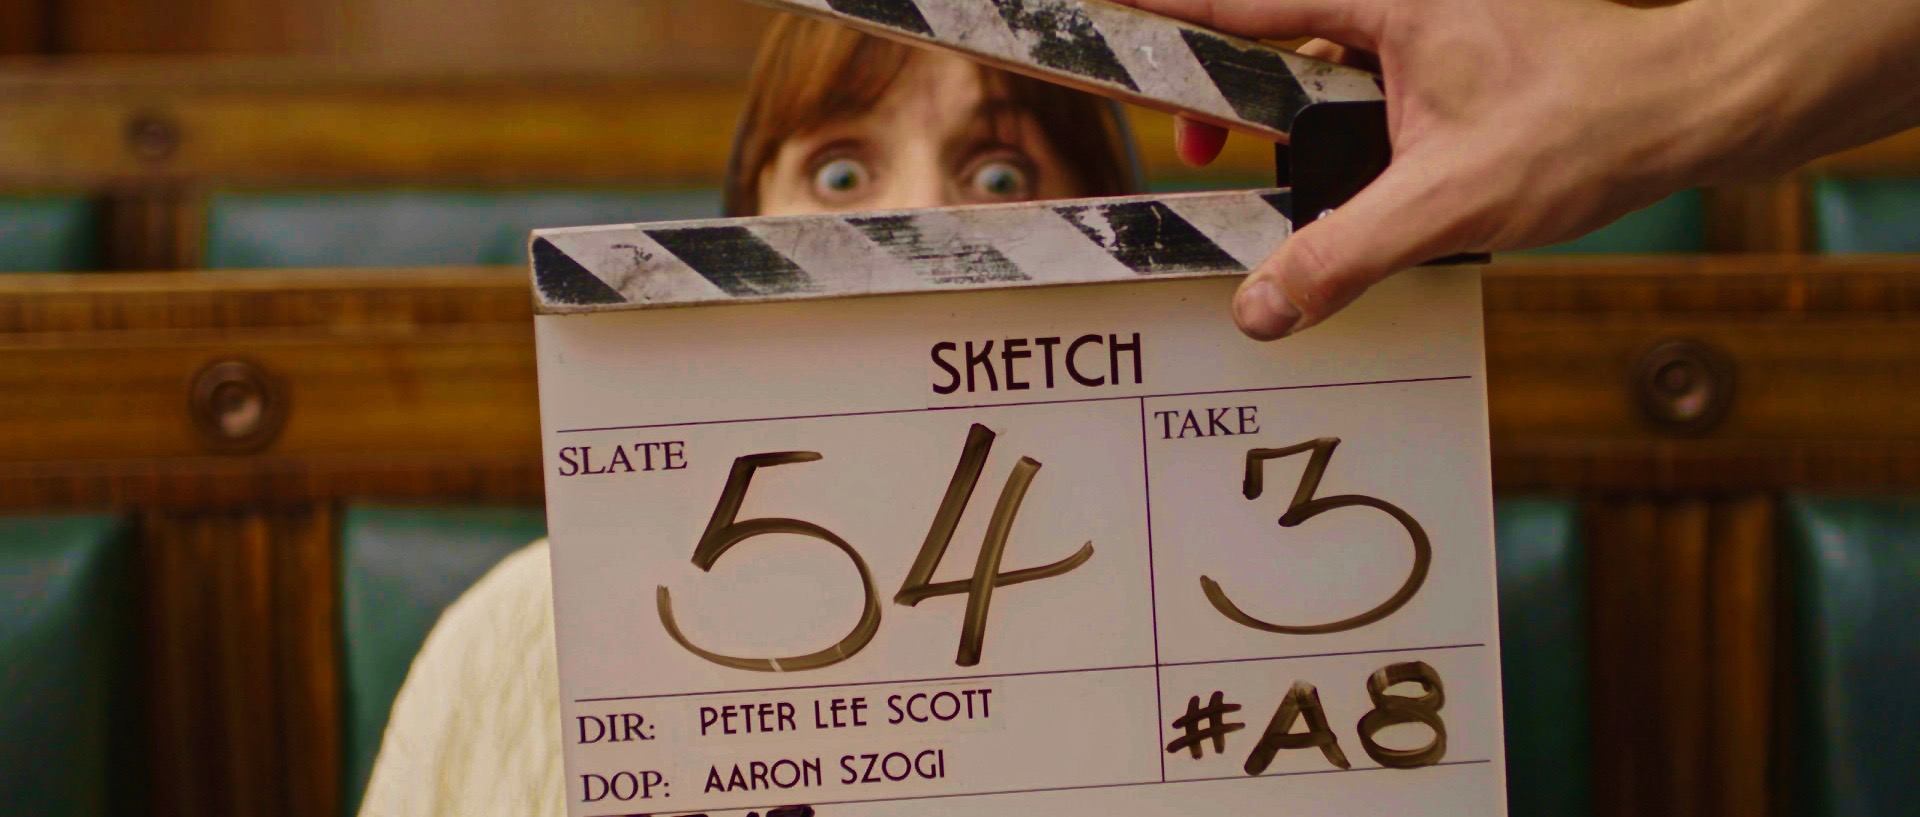 Sketch Cast and Crew Picture